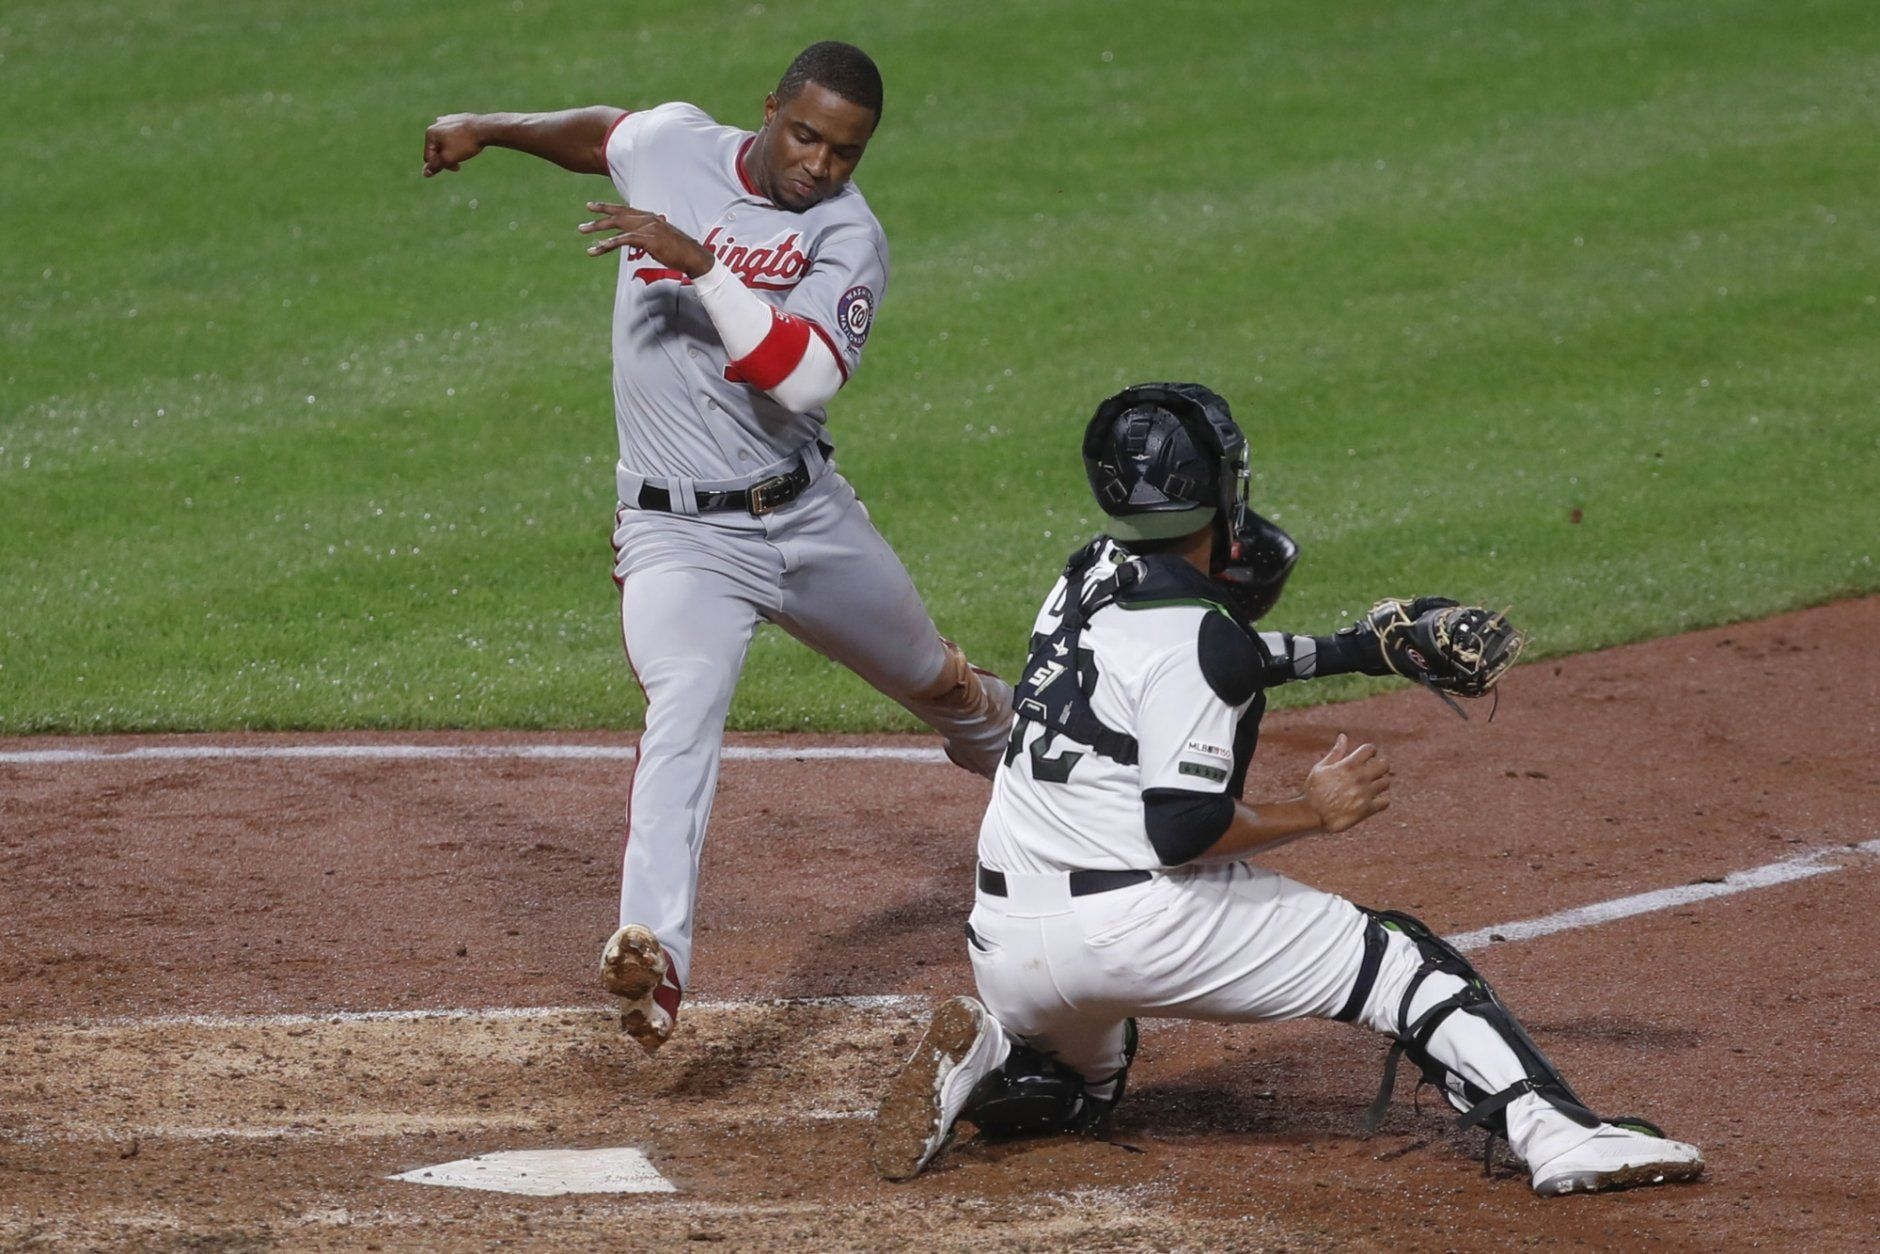 Washington Nationals' Victor Robles, left, twists to avoid a tag by Pittsburgh Pirates catcher Elias Diaz to score on a single by Asdrubal Cabrera in the eighth inning of a baseball game, Thursday, Aug. 22, 2019, in Pittsburgh. (AP Photo/Keith Srakocic)